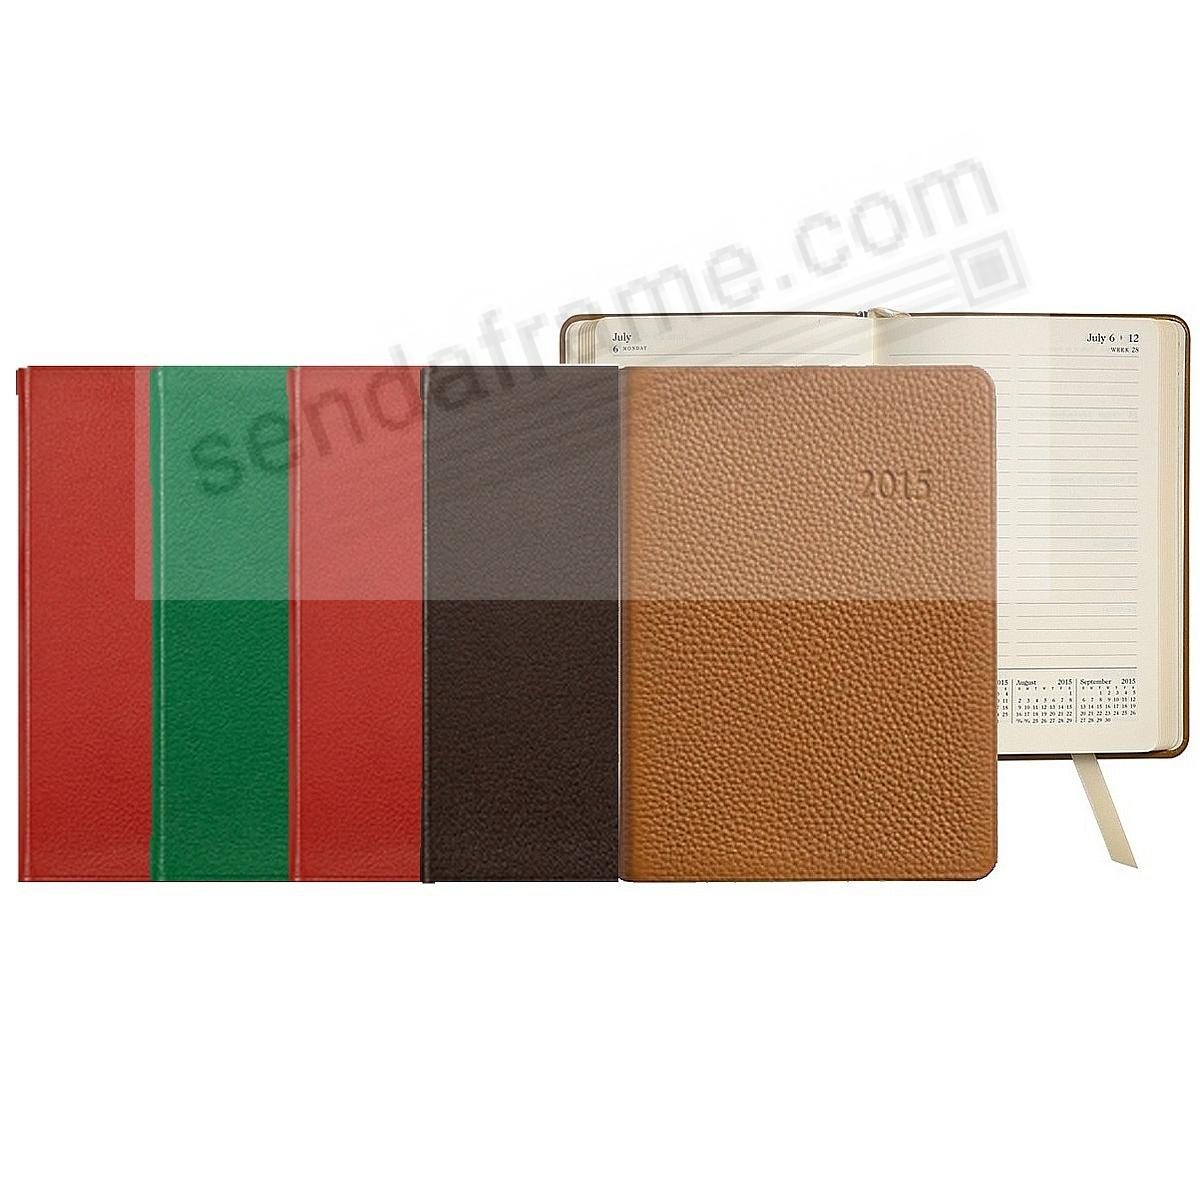 2015 ASSORTED COLORS Notebook Planner 7in or 9in Fine Leather by Graphic Image™